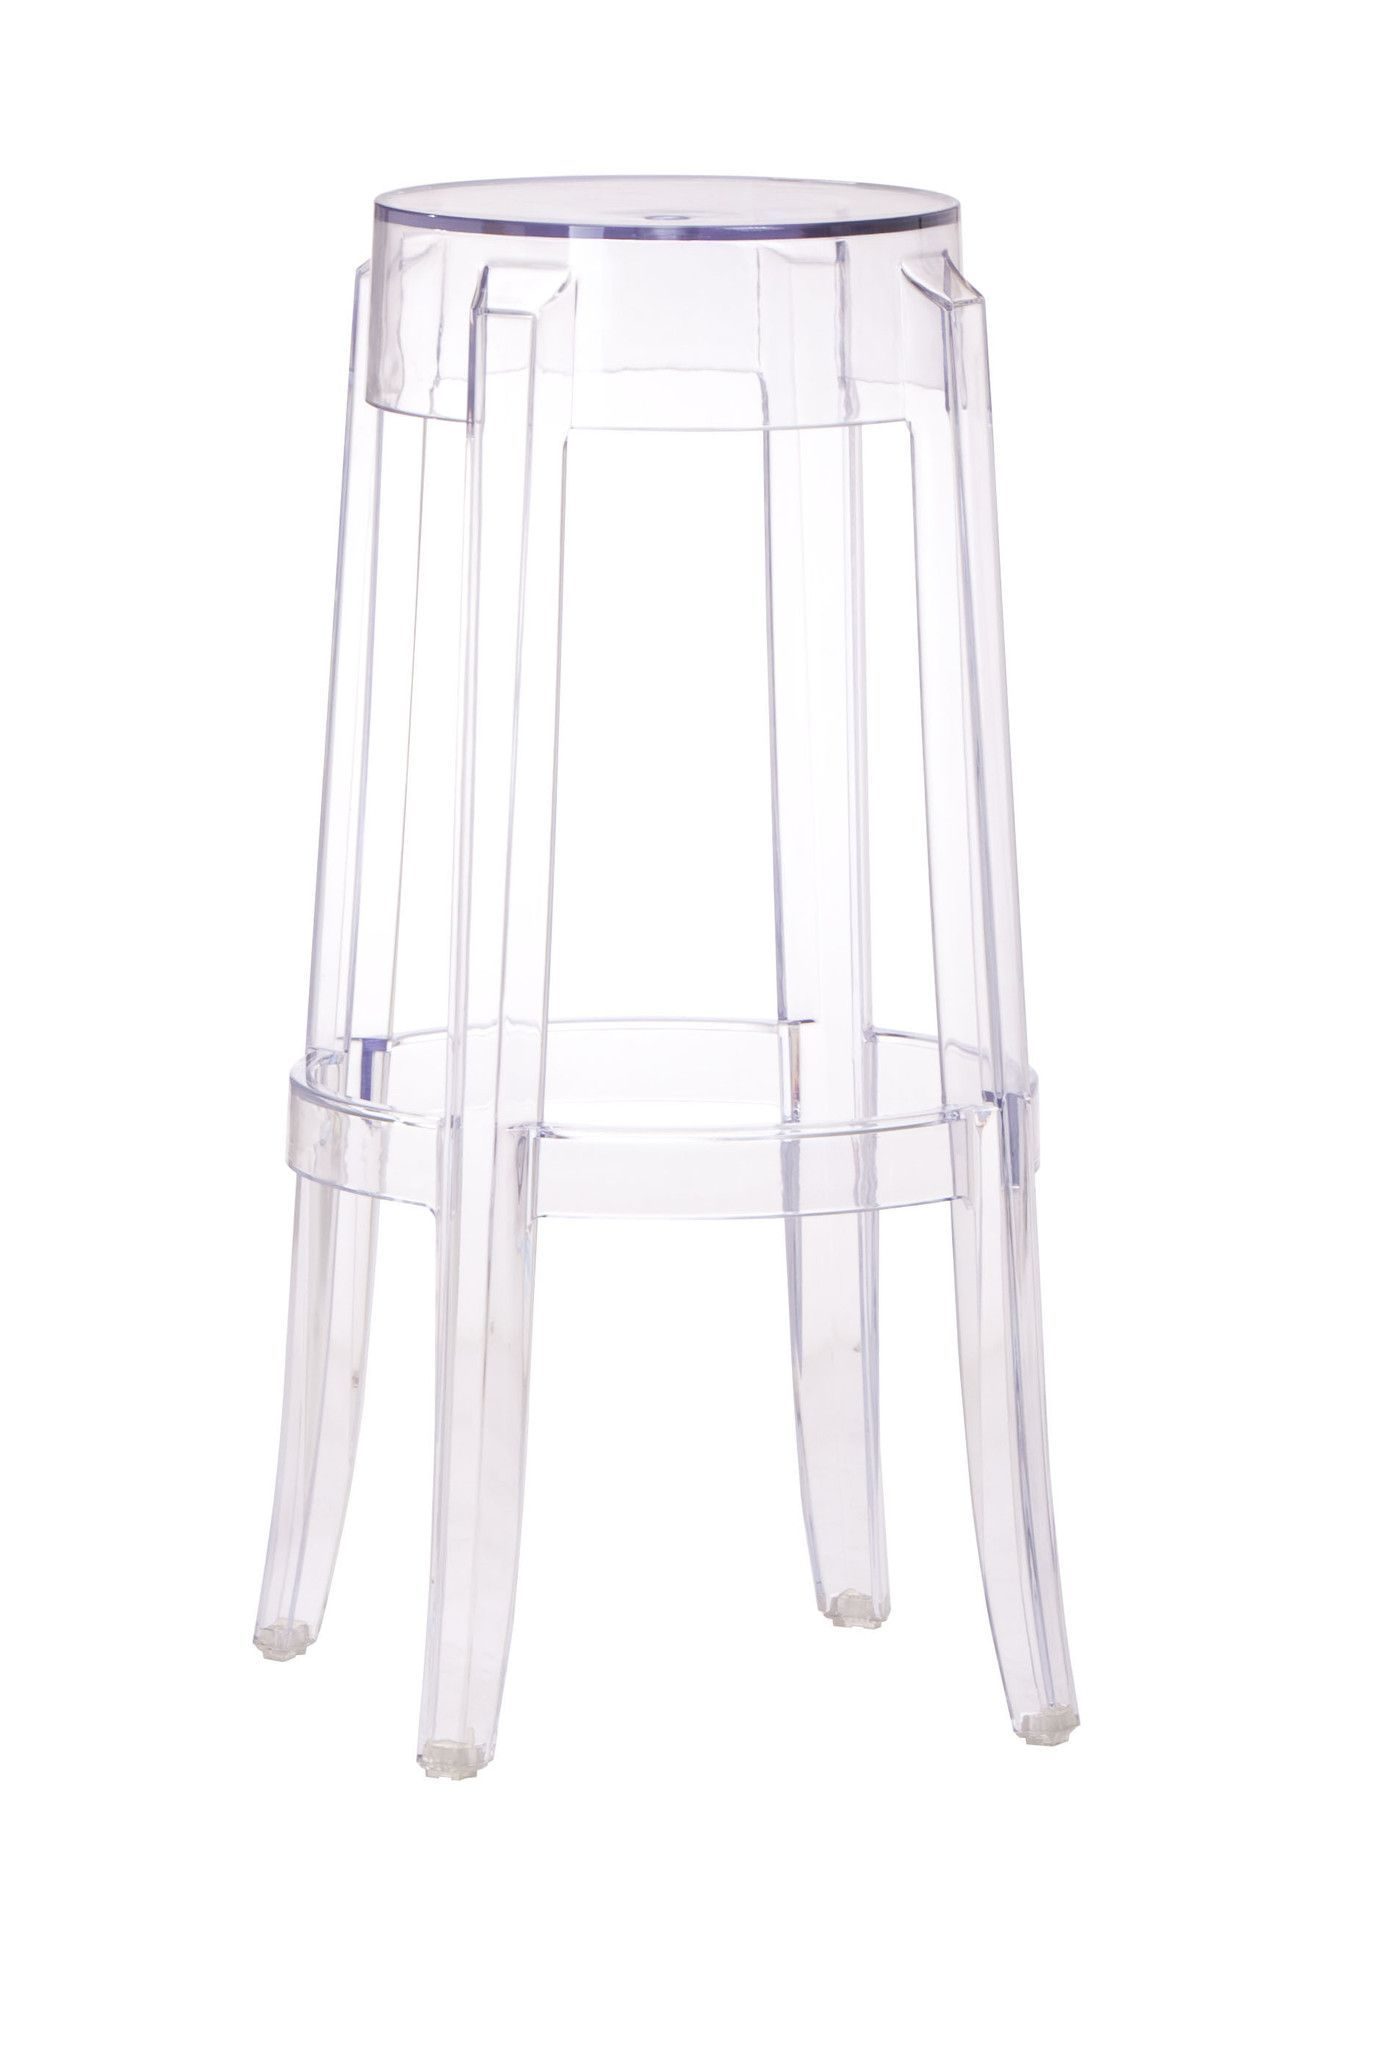 ANIME BARSTOOL TRANSPARENT Products Pinterest